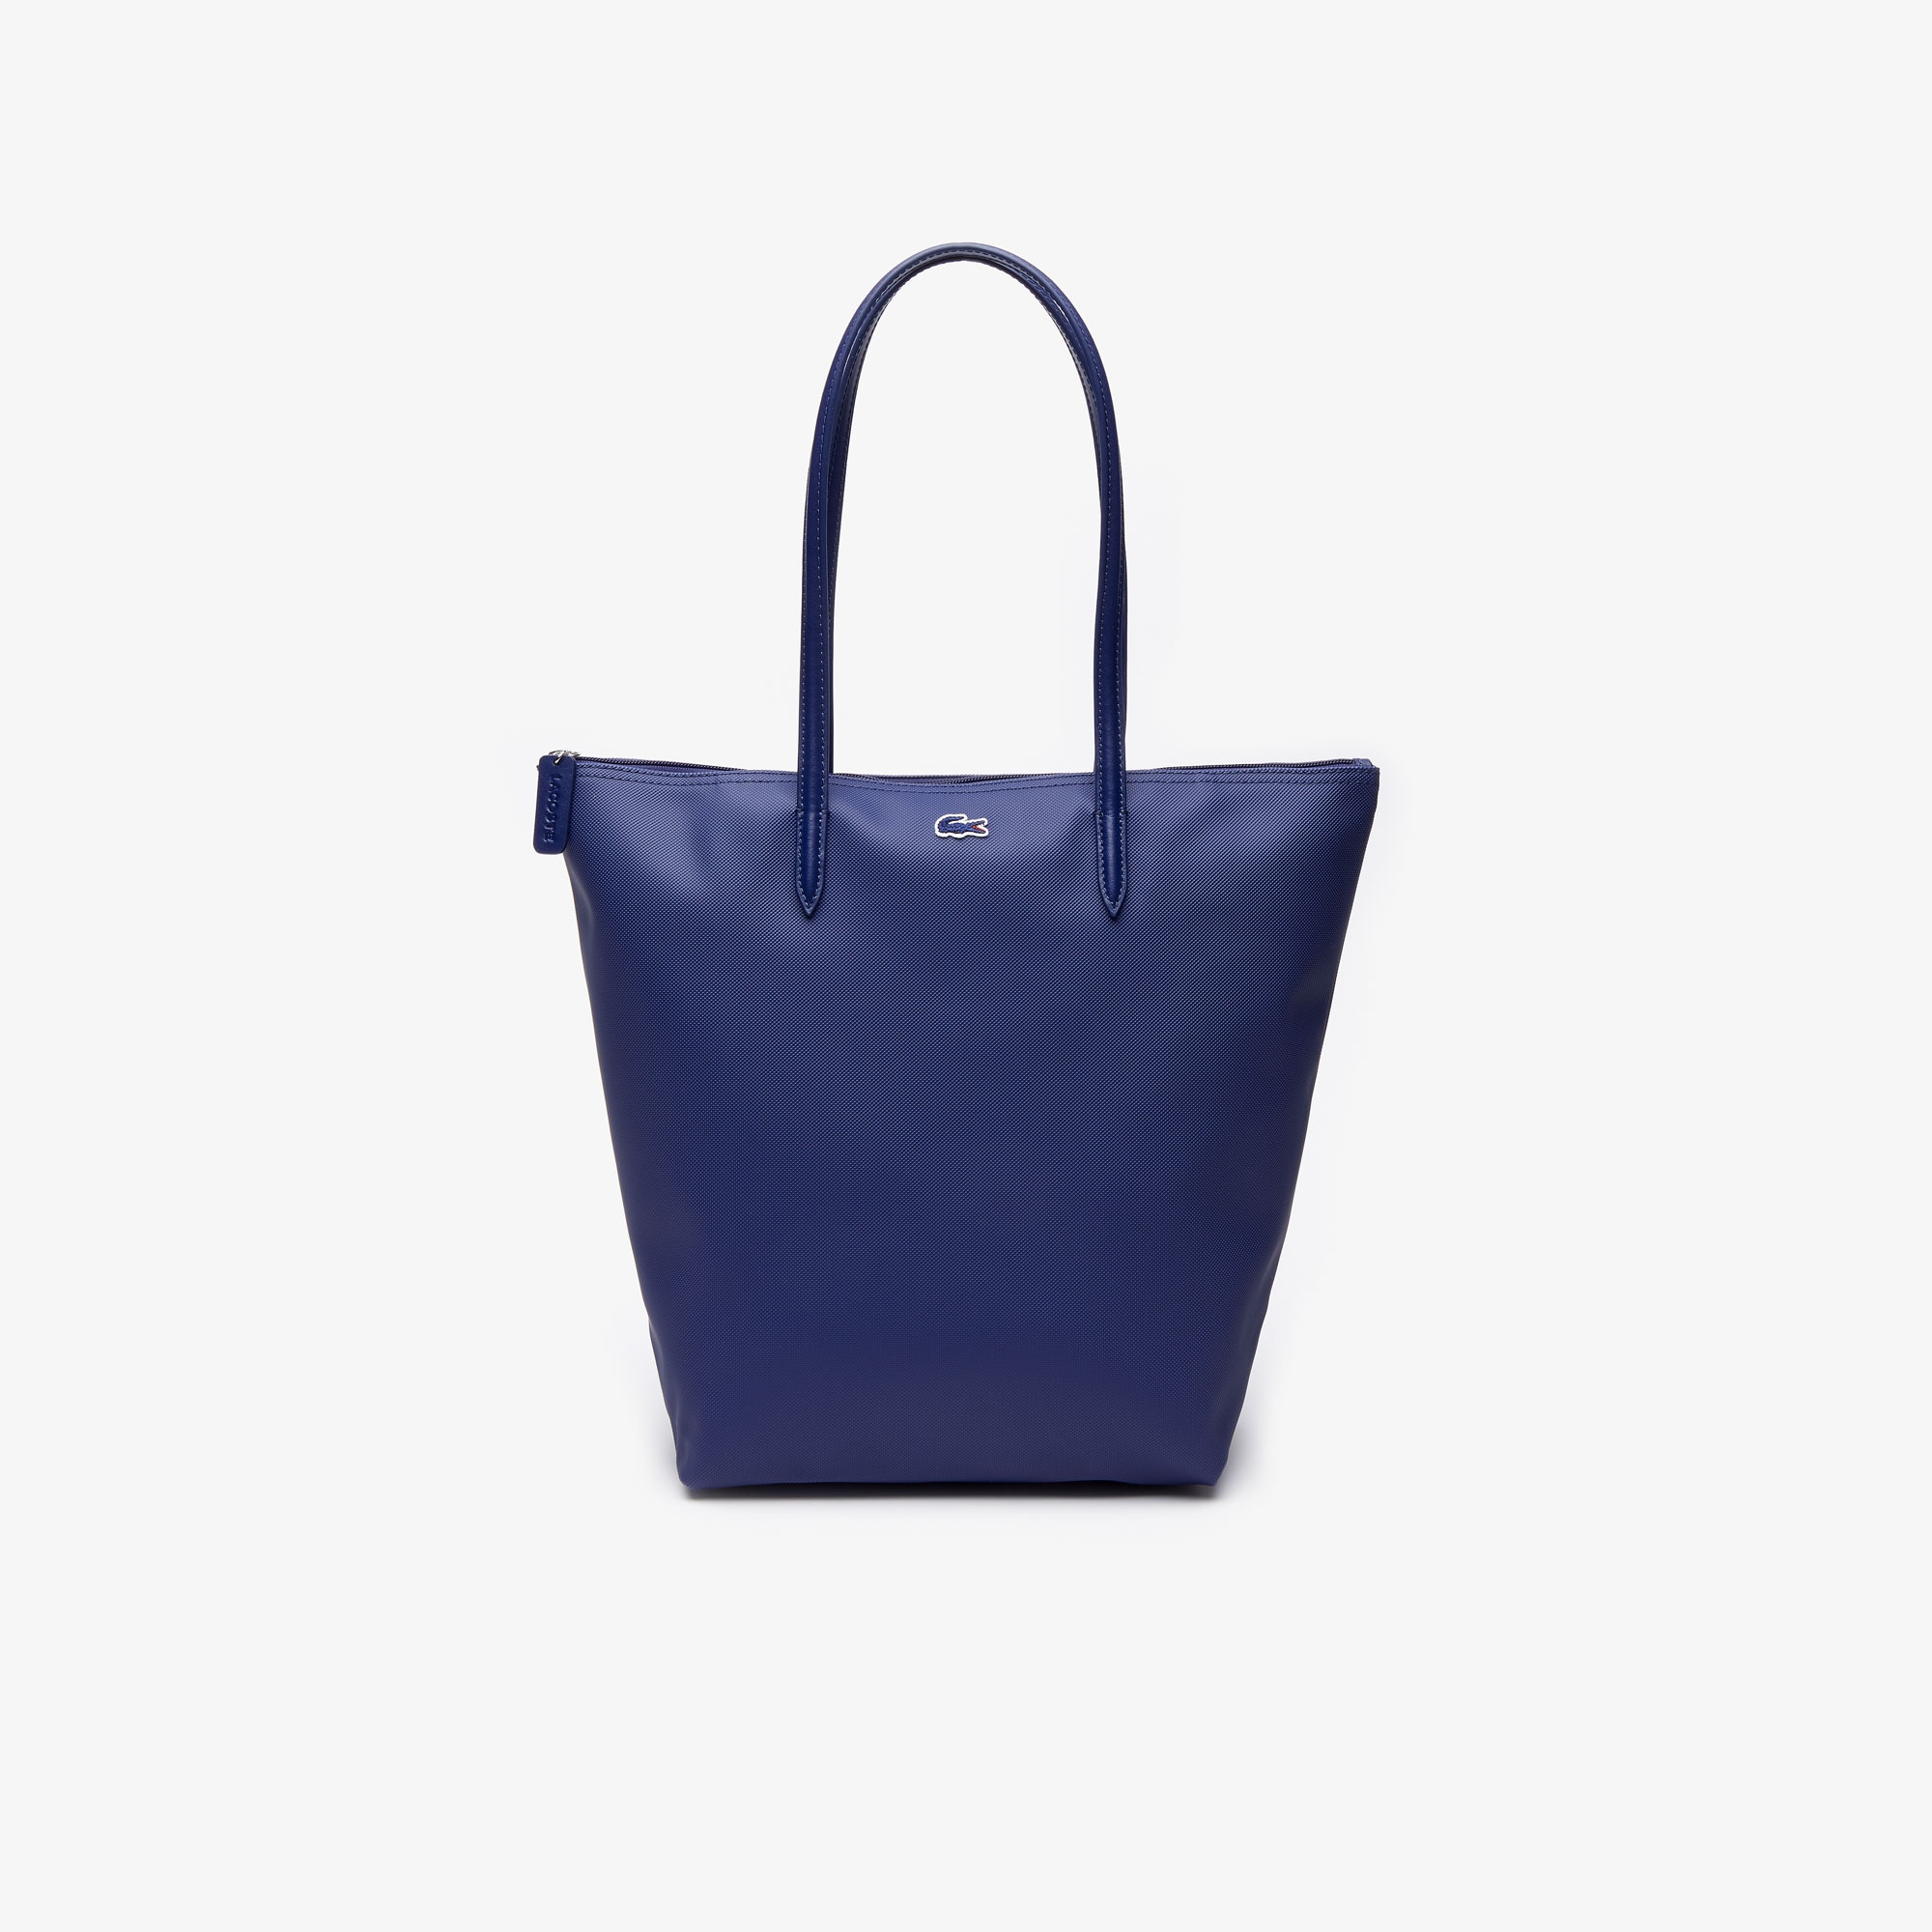 Lacoste Women's L.12.12 Vertical Tote Bag